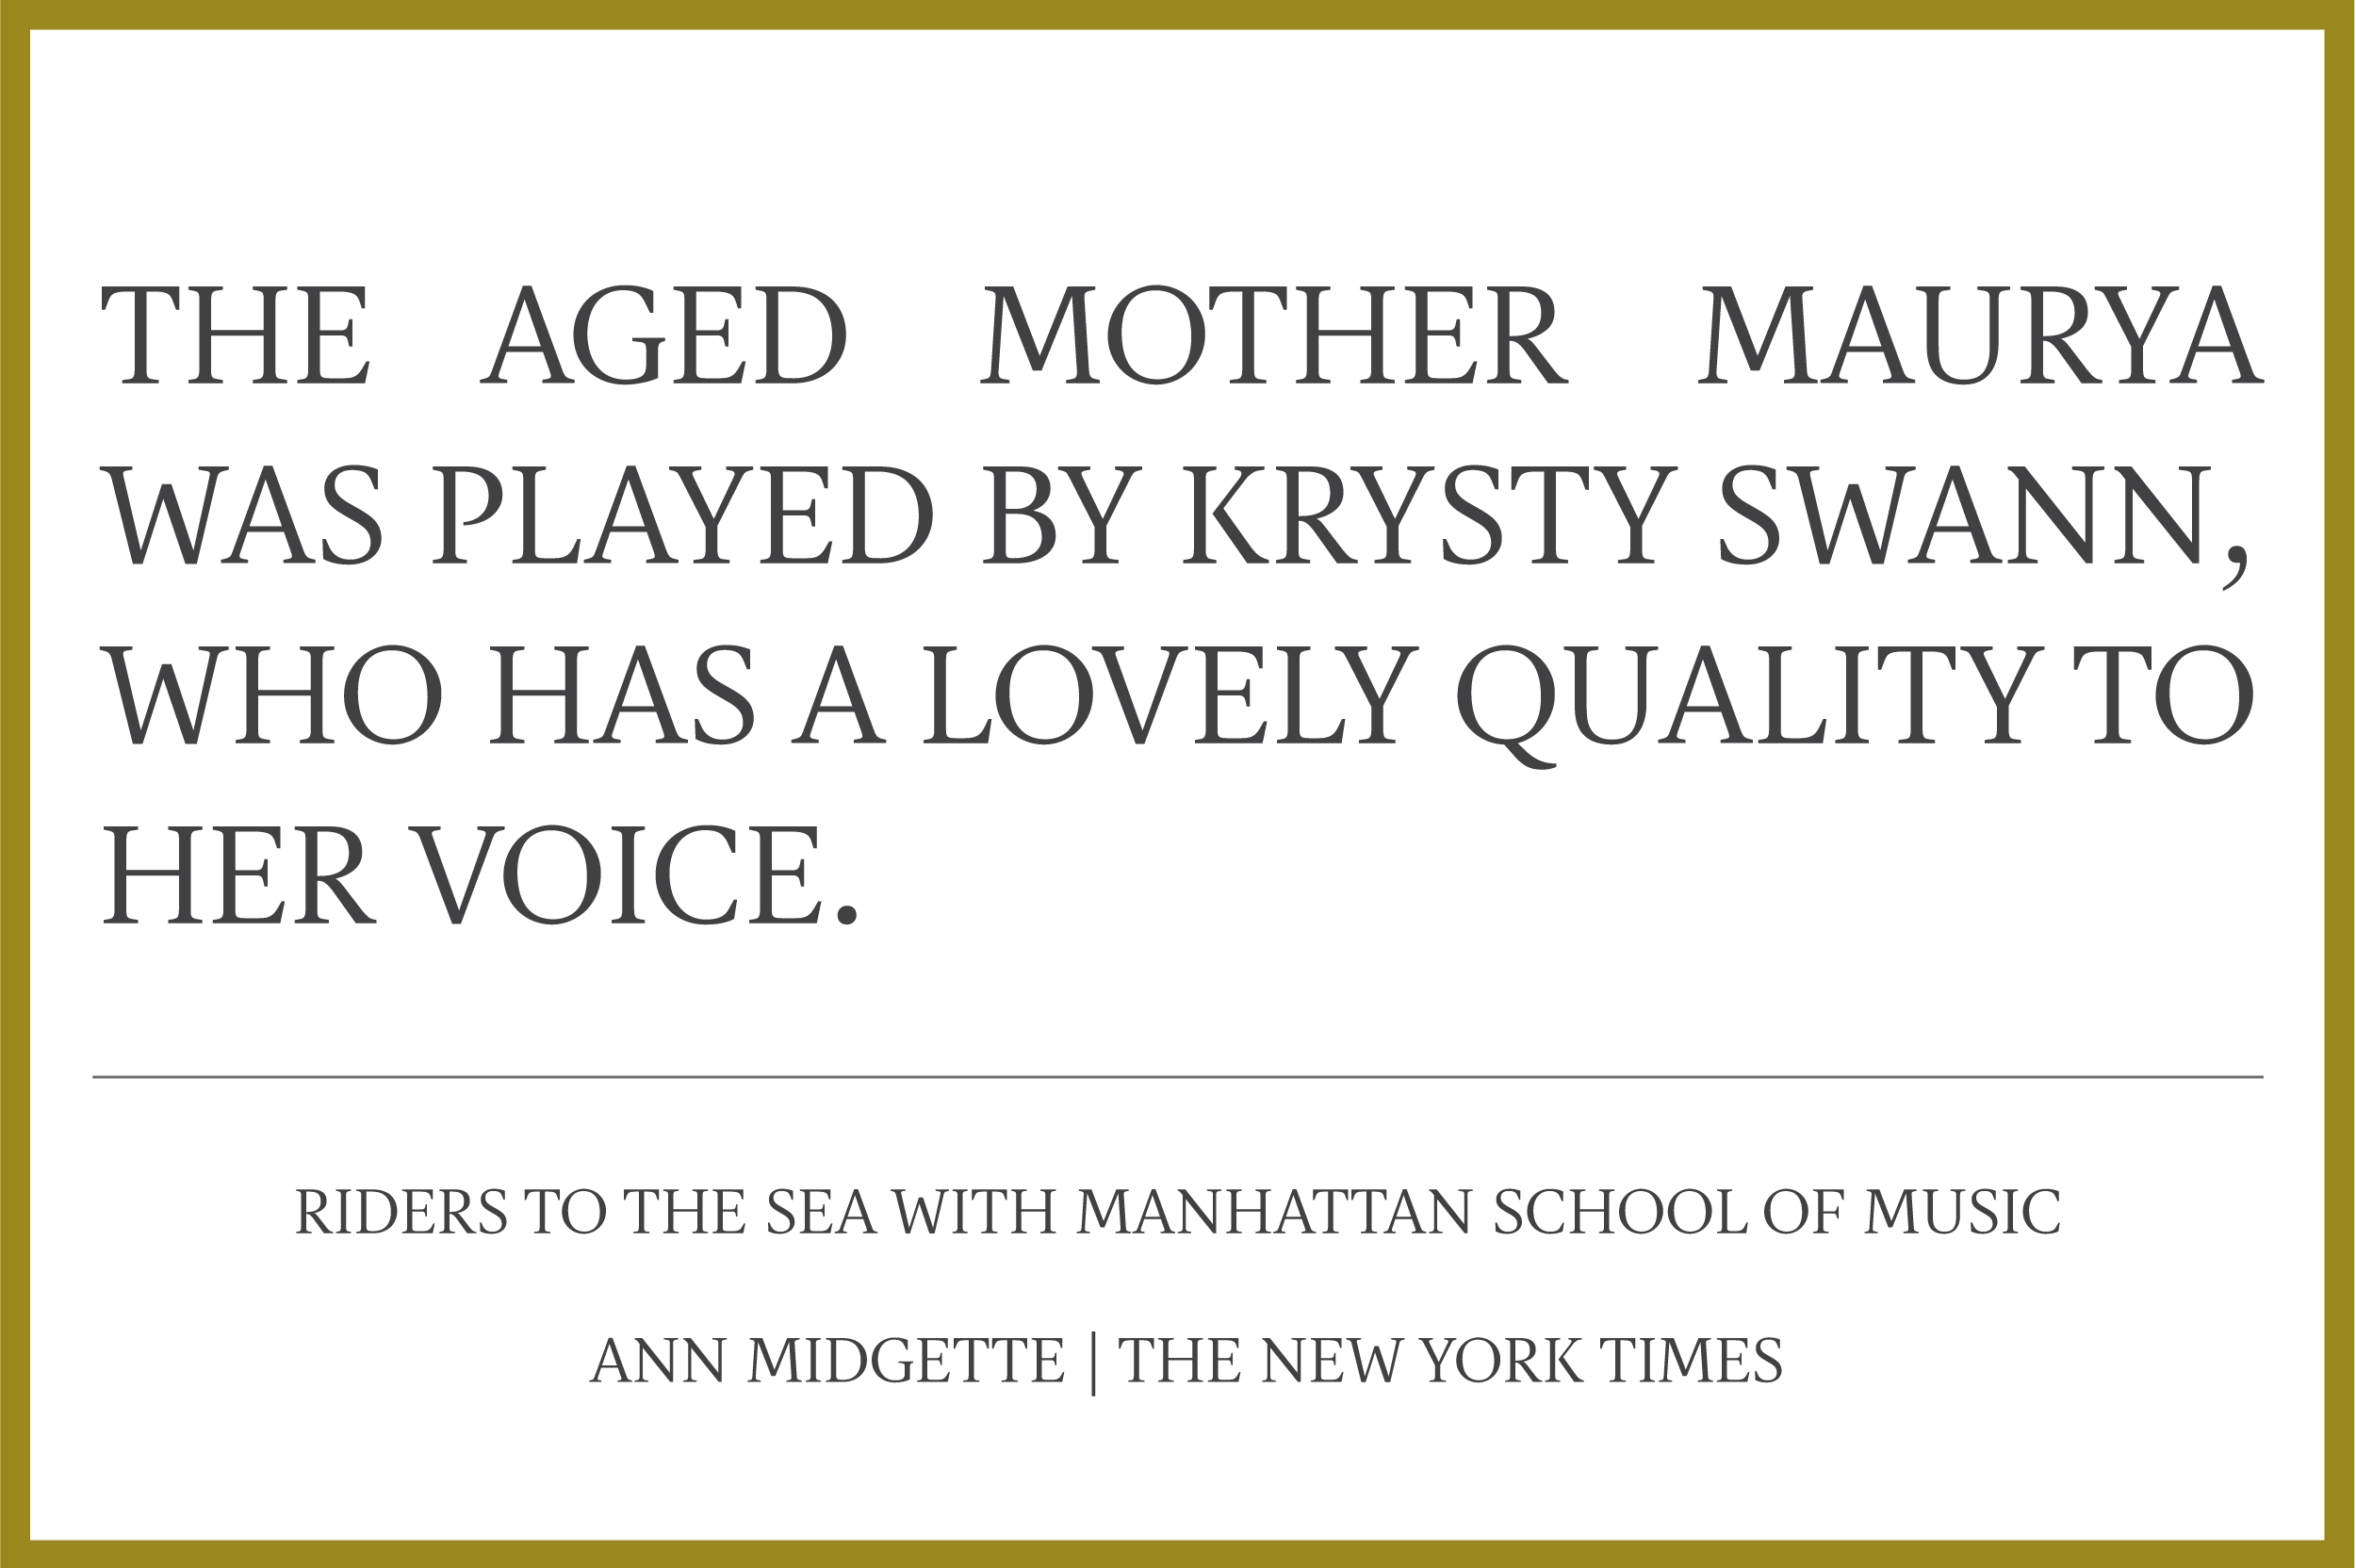 KS-Press-Pg-the-aged-mother-maurya.png